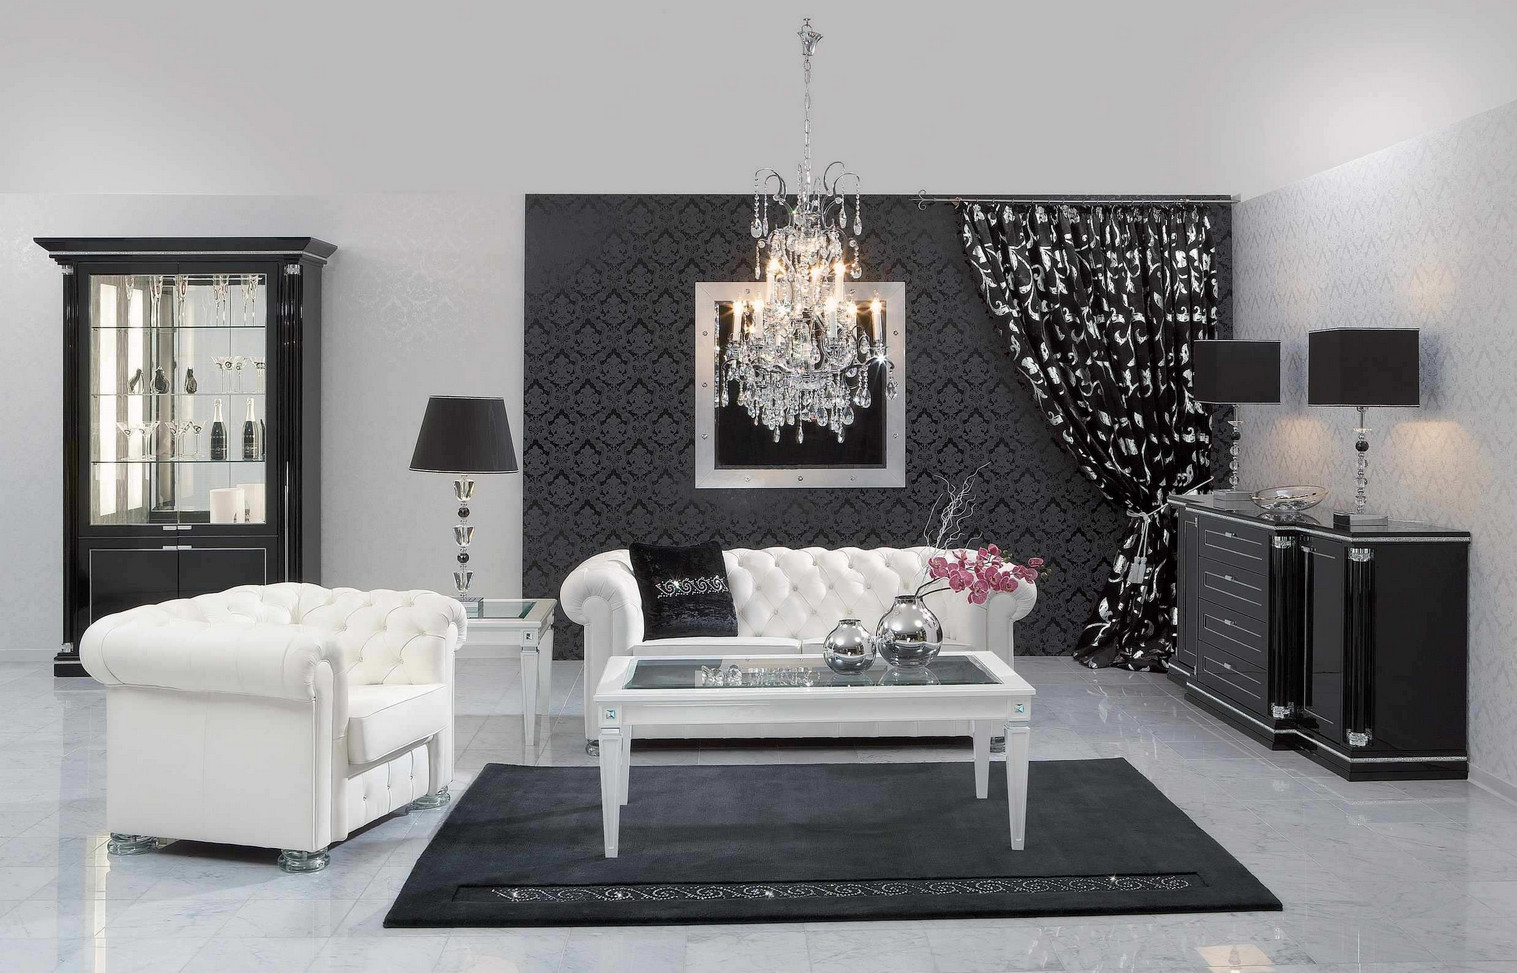 Black and White Painted Rooms7